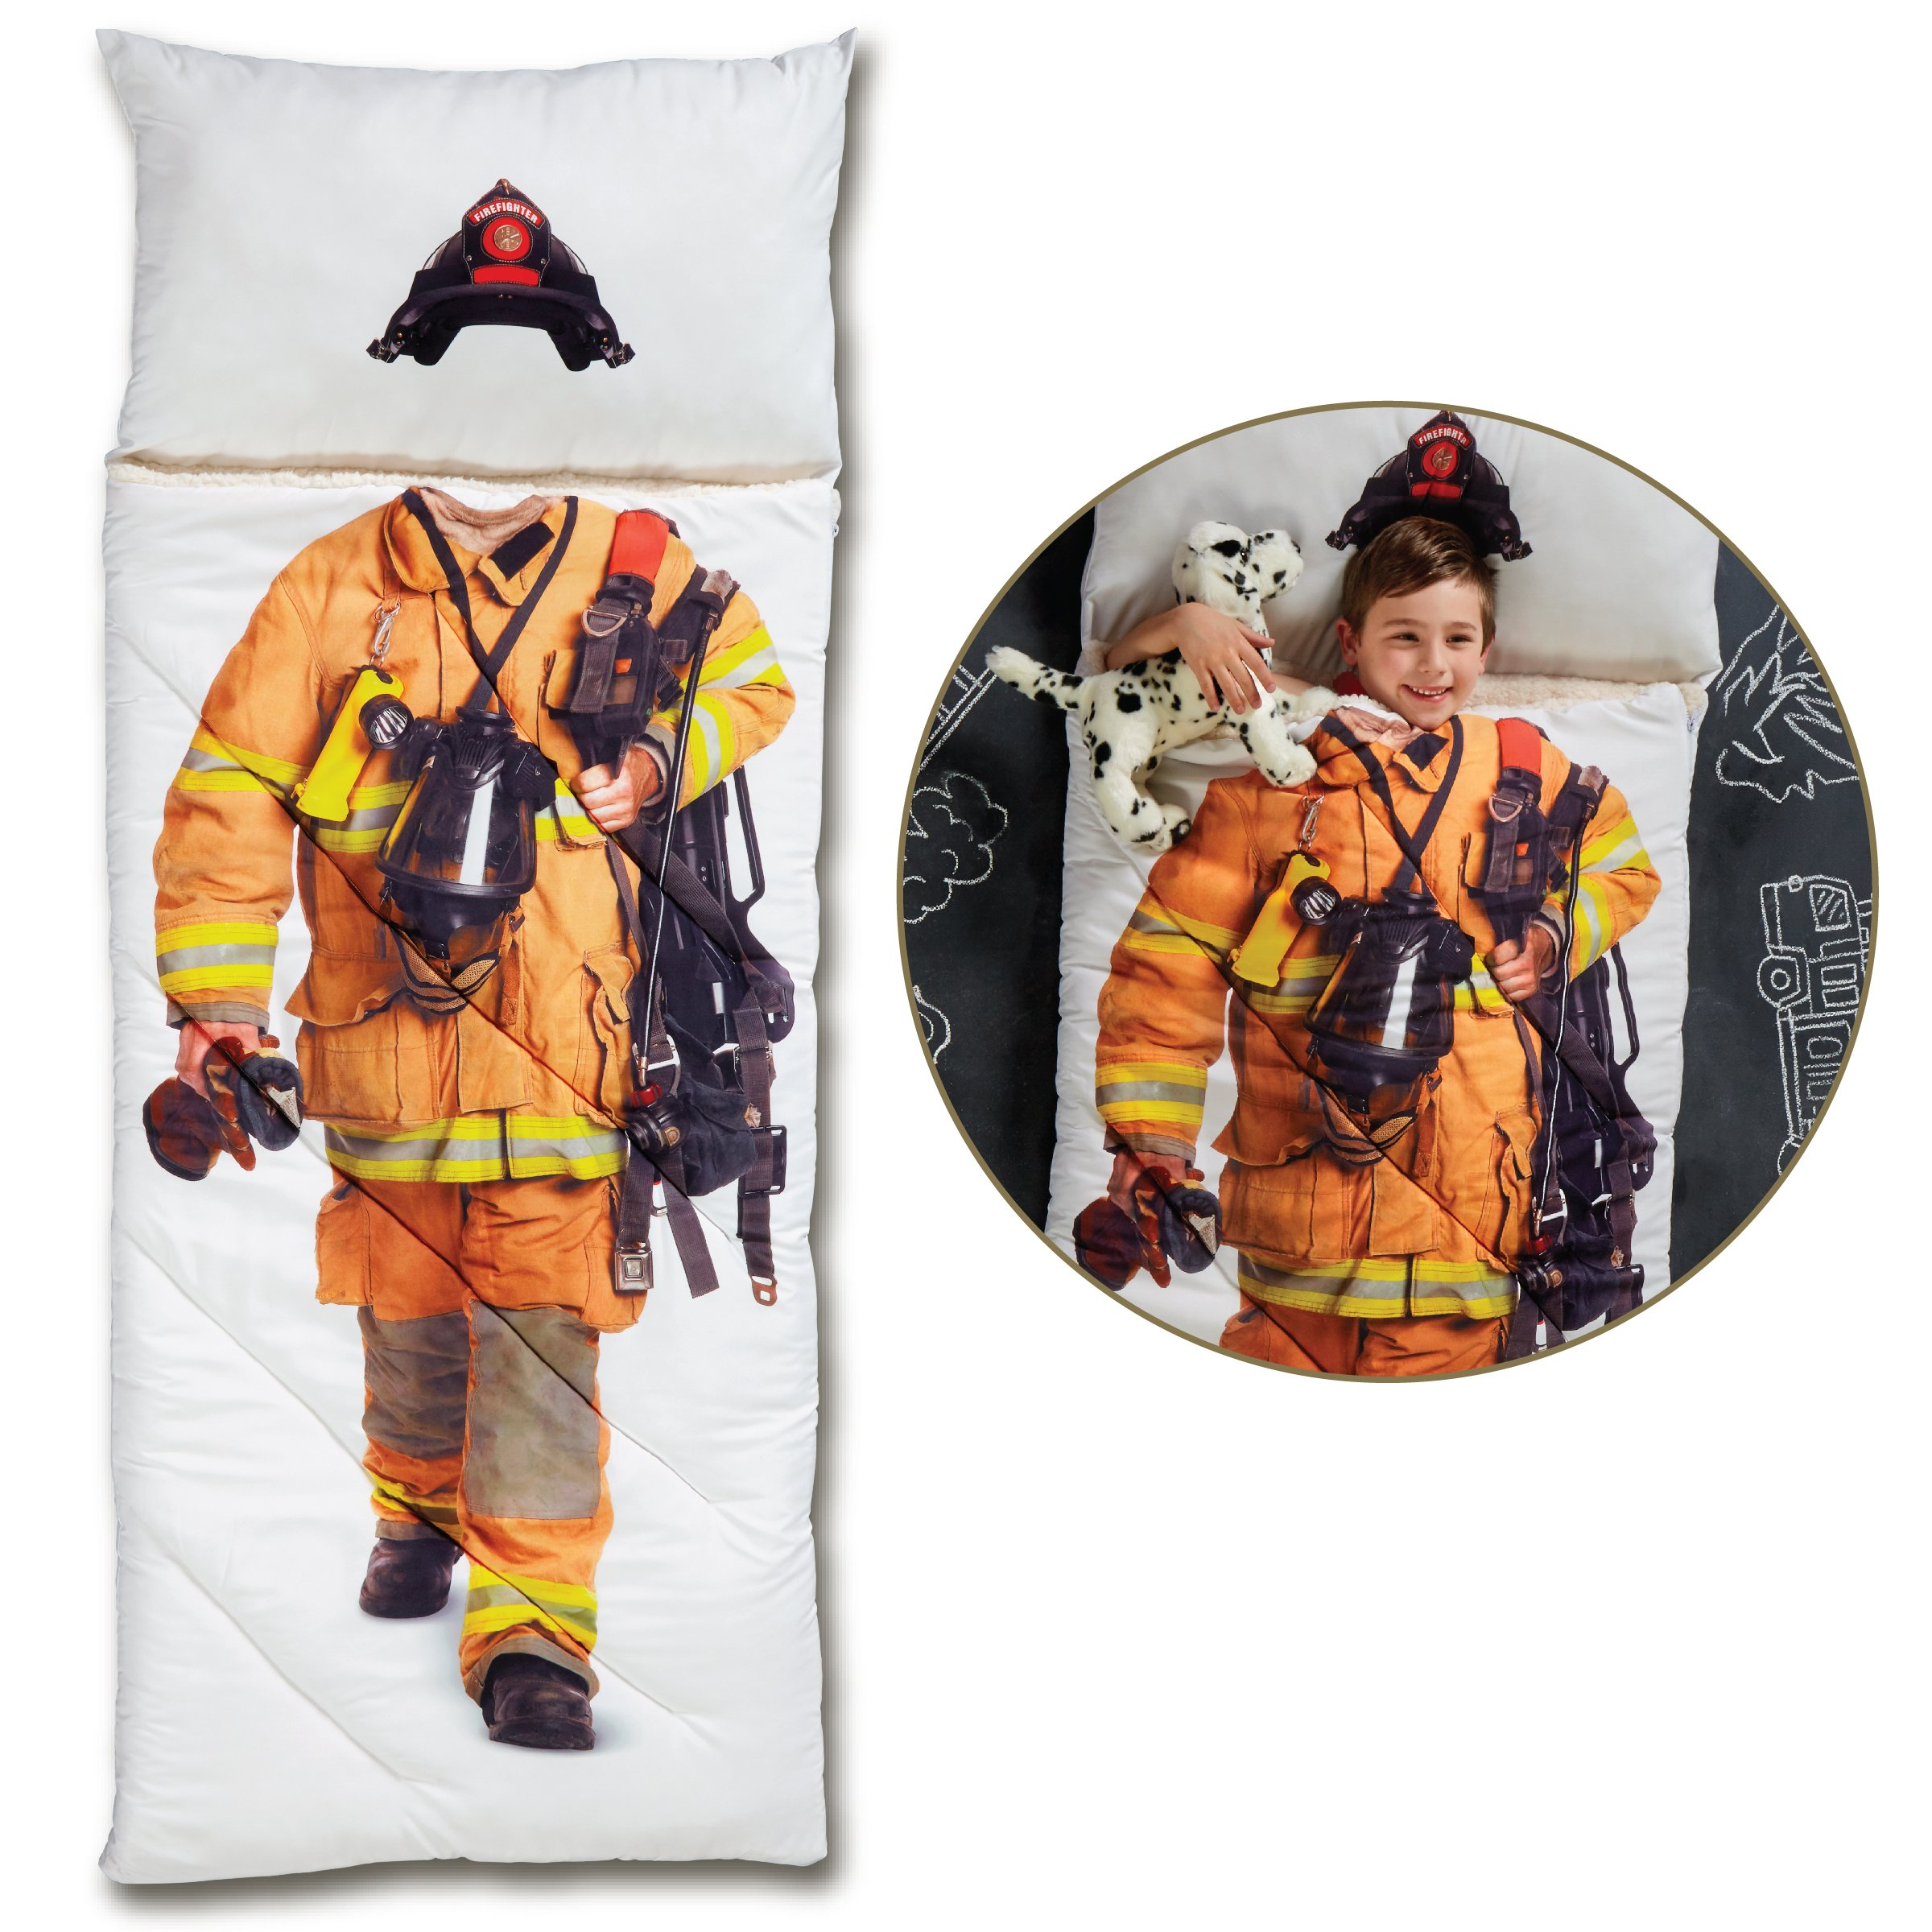 FAO Schwarz Imagine This Photo Printed Sleeping Bag for Children, Realistic Firefighter Design, Cozy Comfortable Sherpa Lining W/Integrated Pillow & Travel Straps, Full Size, Perfect for Sleepovers